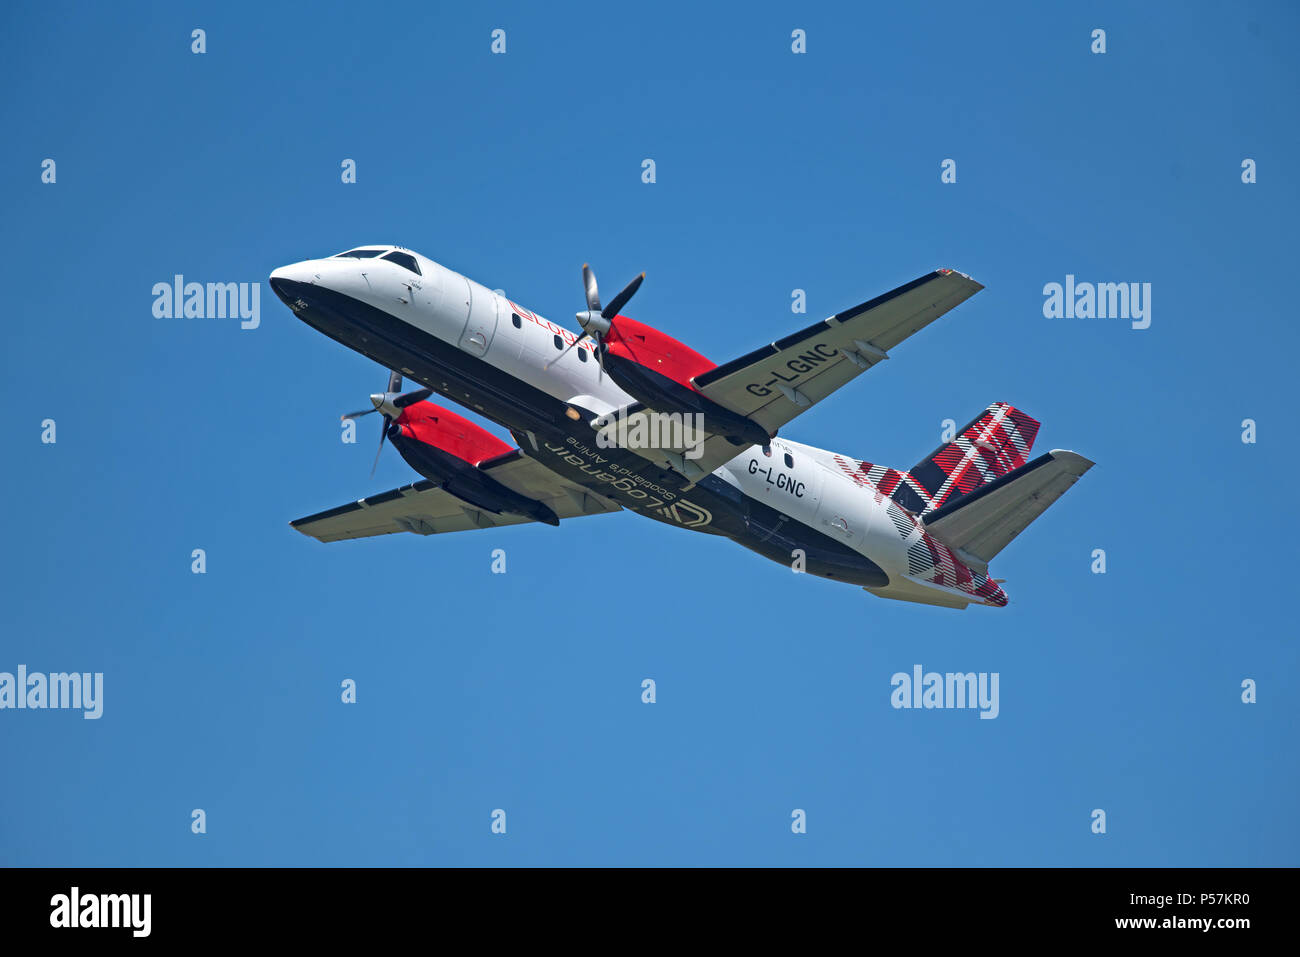 the Loganair Saab 340 in its Scottish Tartan Liver leaving Inverness Airport for its daily flight across to Stornoway in the Outer Hebrides. - Stock Image